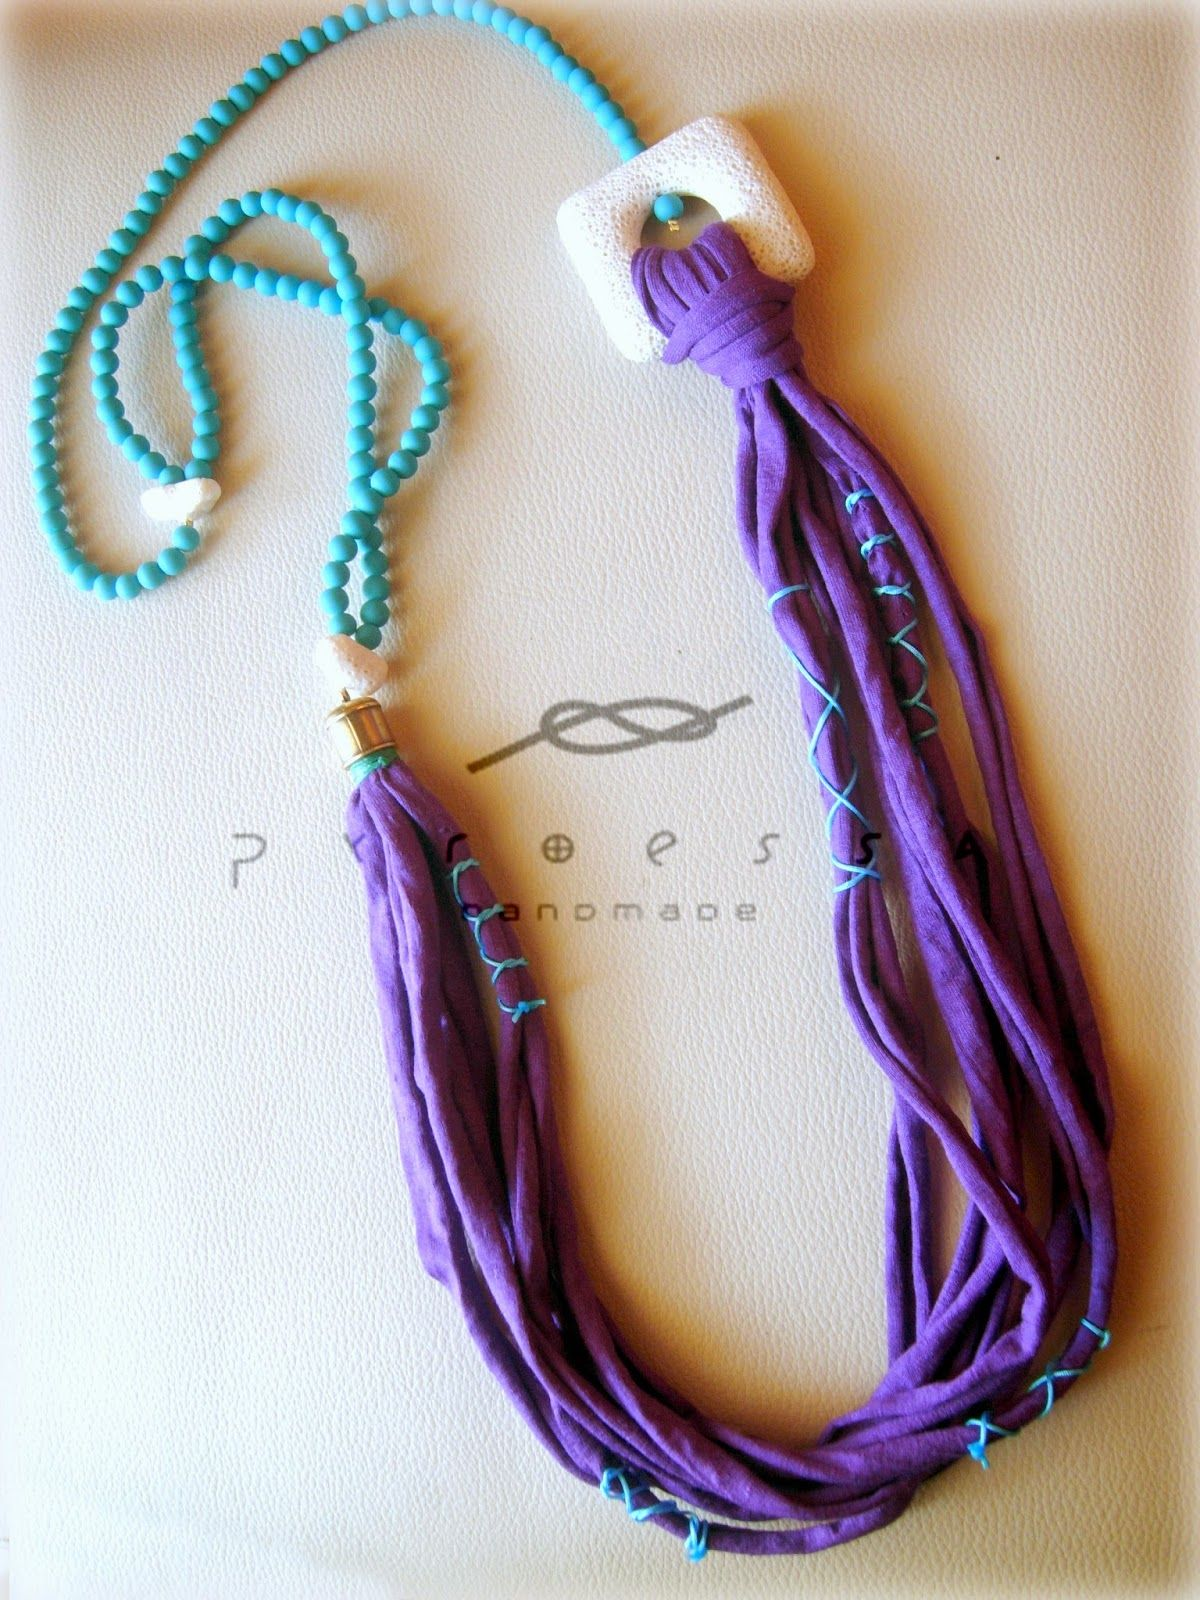 Pyroessa Handmade  collections  4922ffe372a